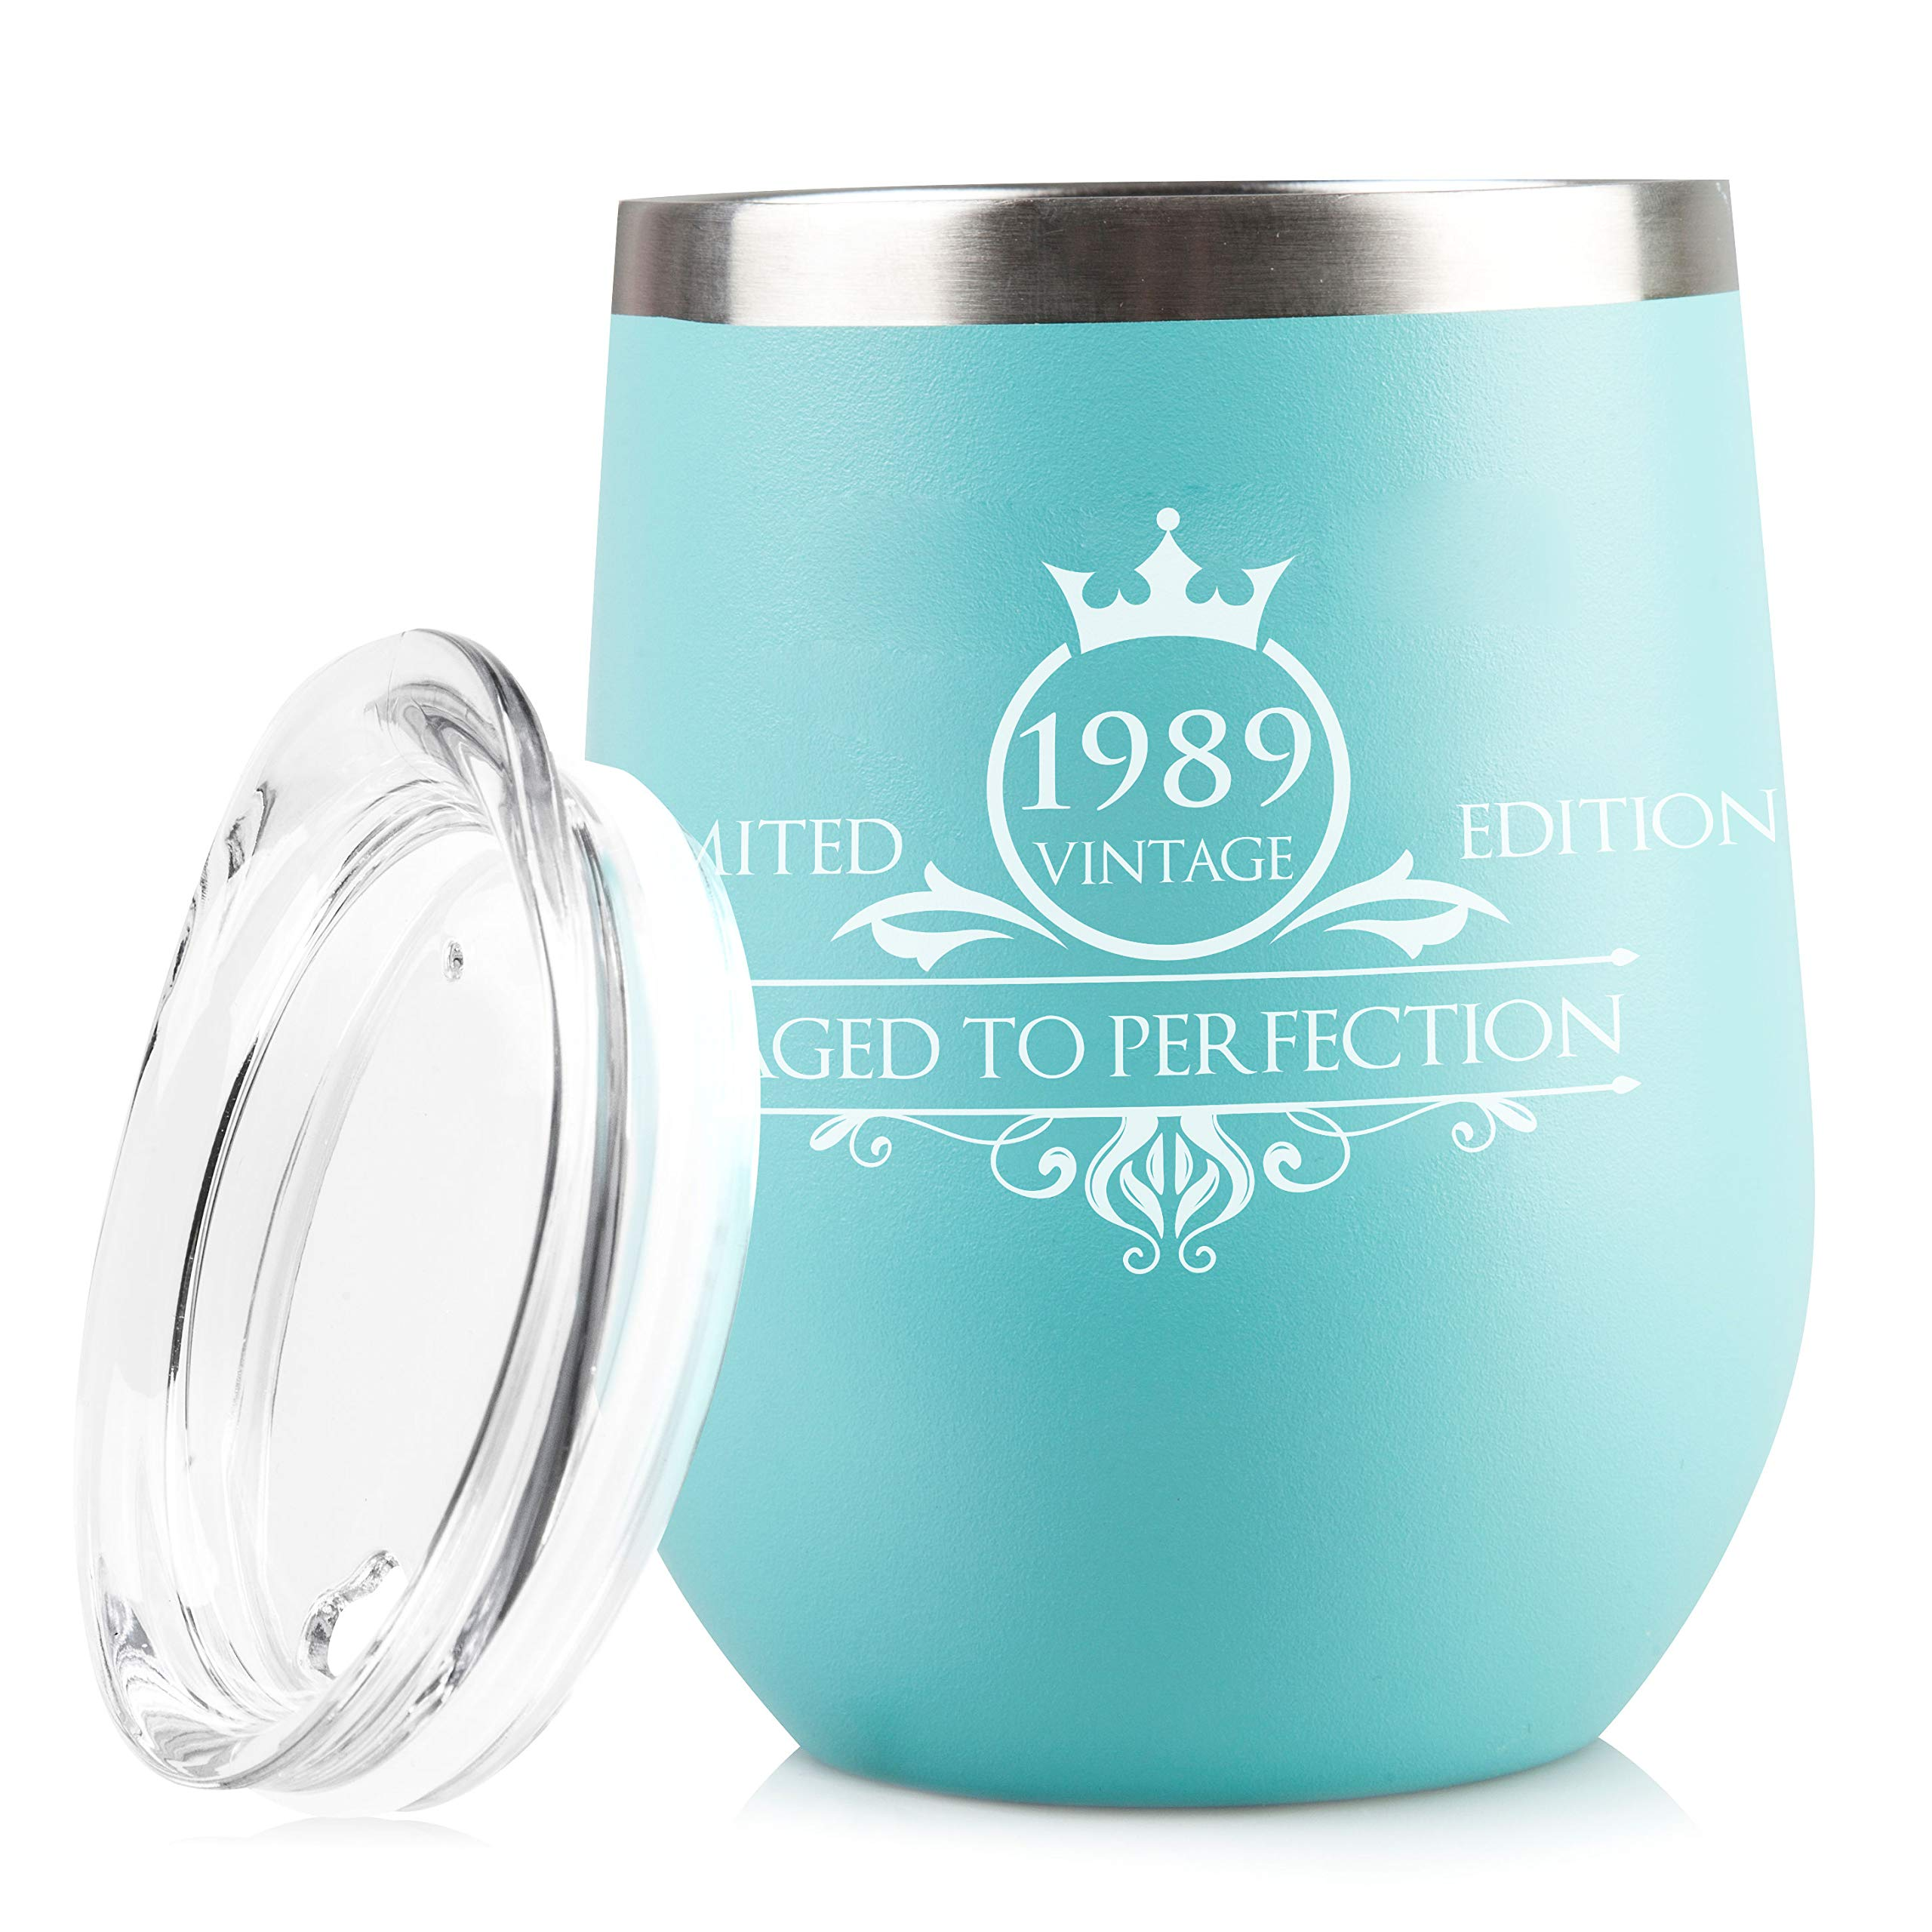 1989 30th Birthday Gifts for Women Men Tumbler | Vintage Anniversary Gift Ideas for Mom Dad Husband Wife | 30 Year Old Party Decorations Supplies for Him Her | 12 oz Stainless Steel Insulated Cups